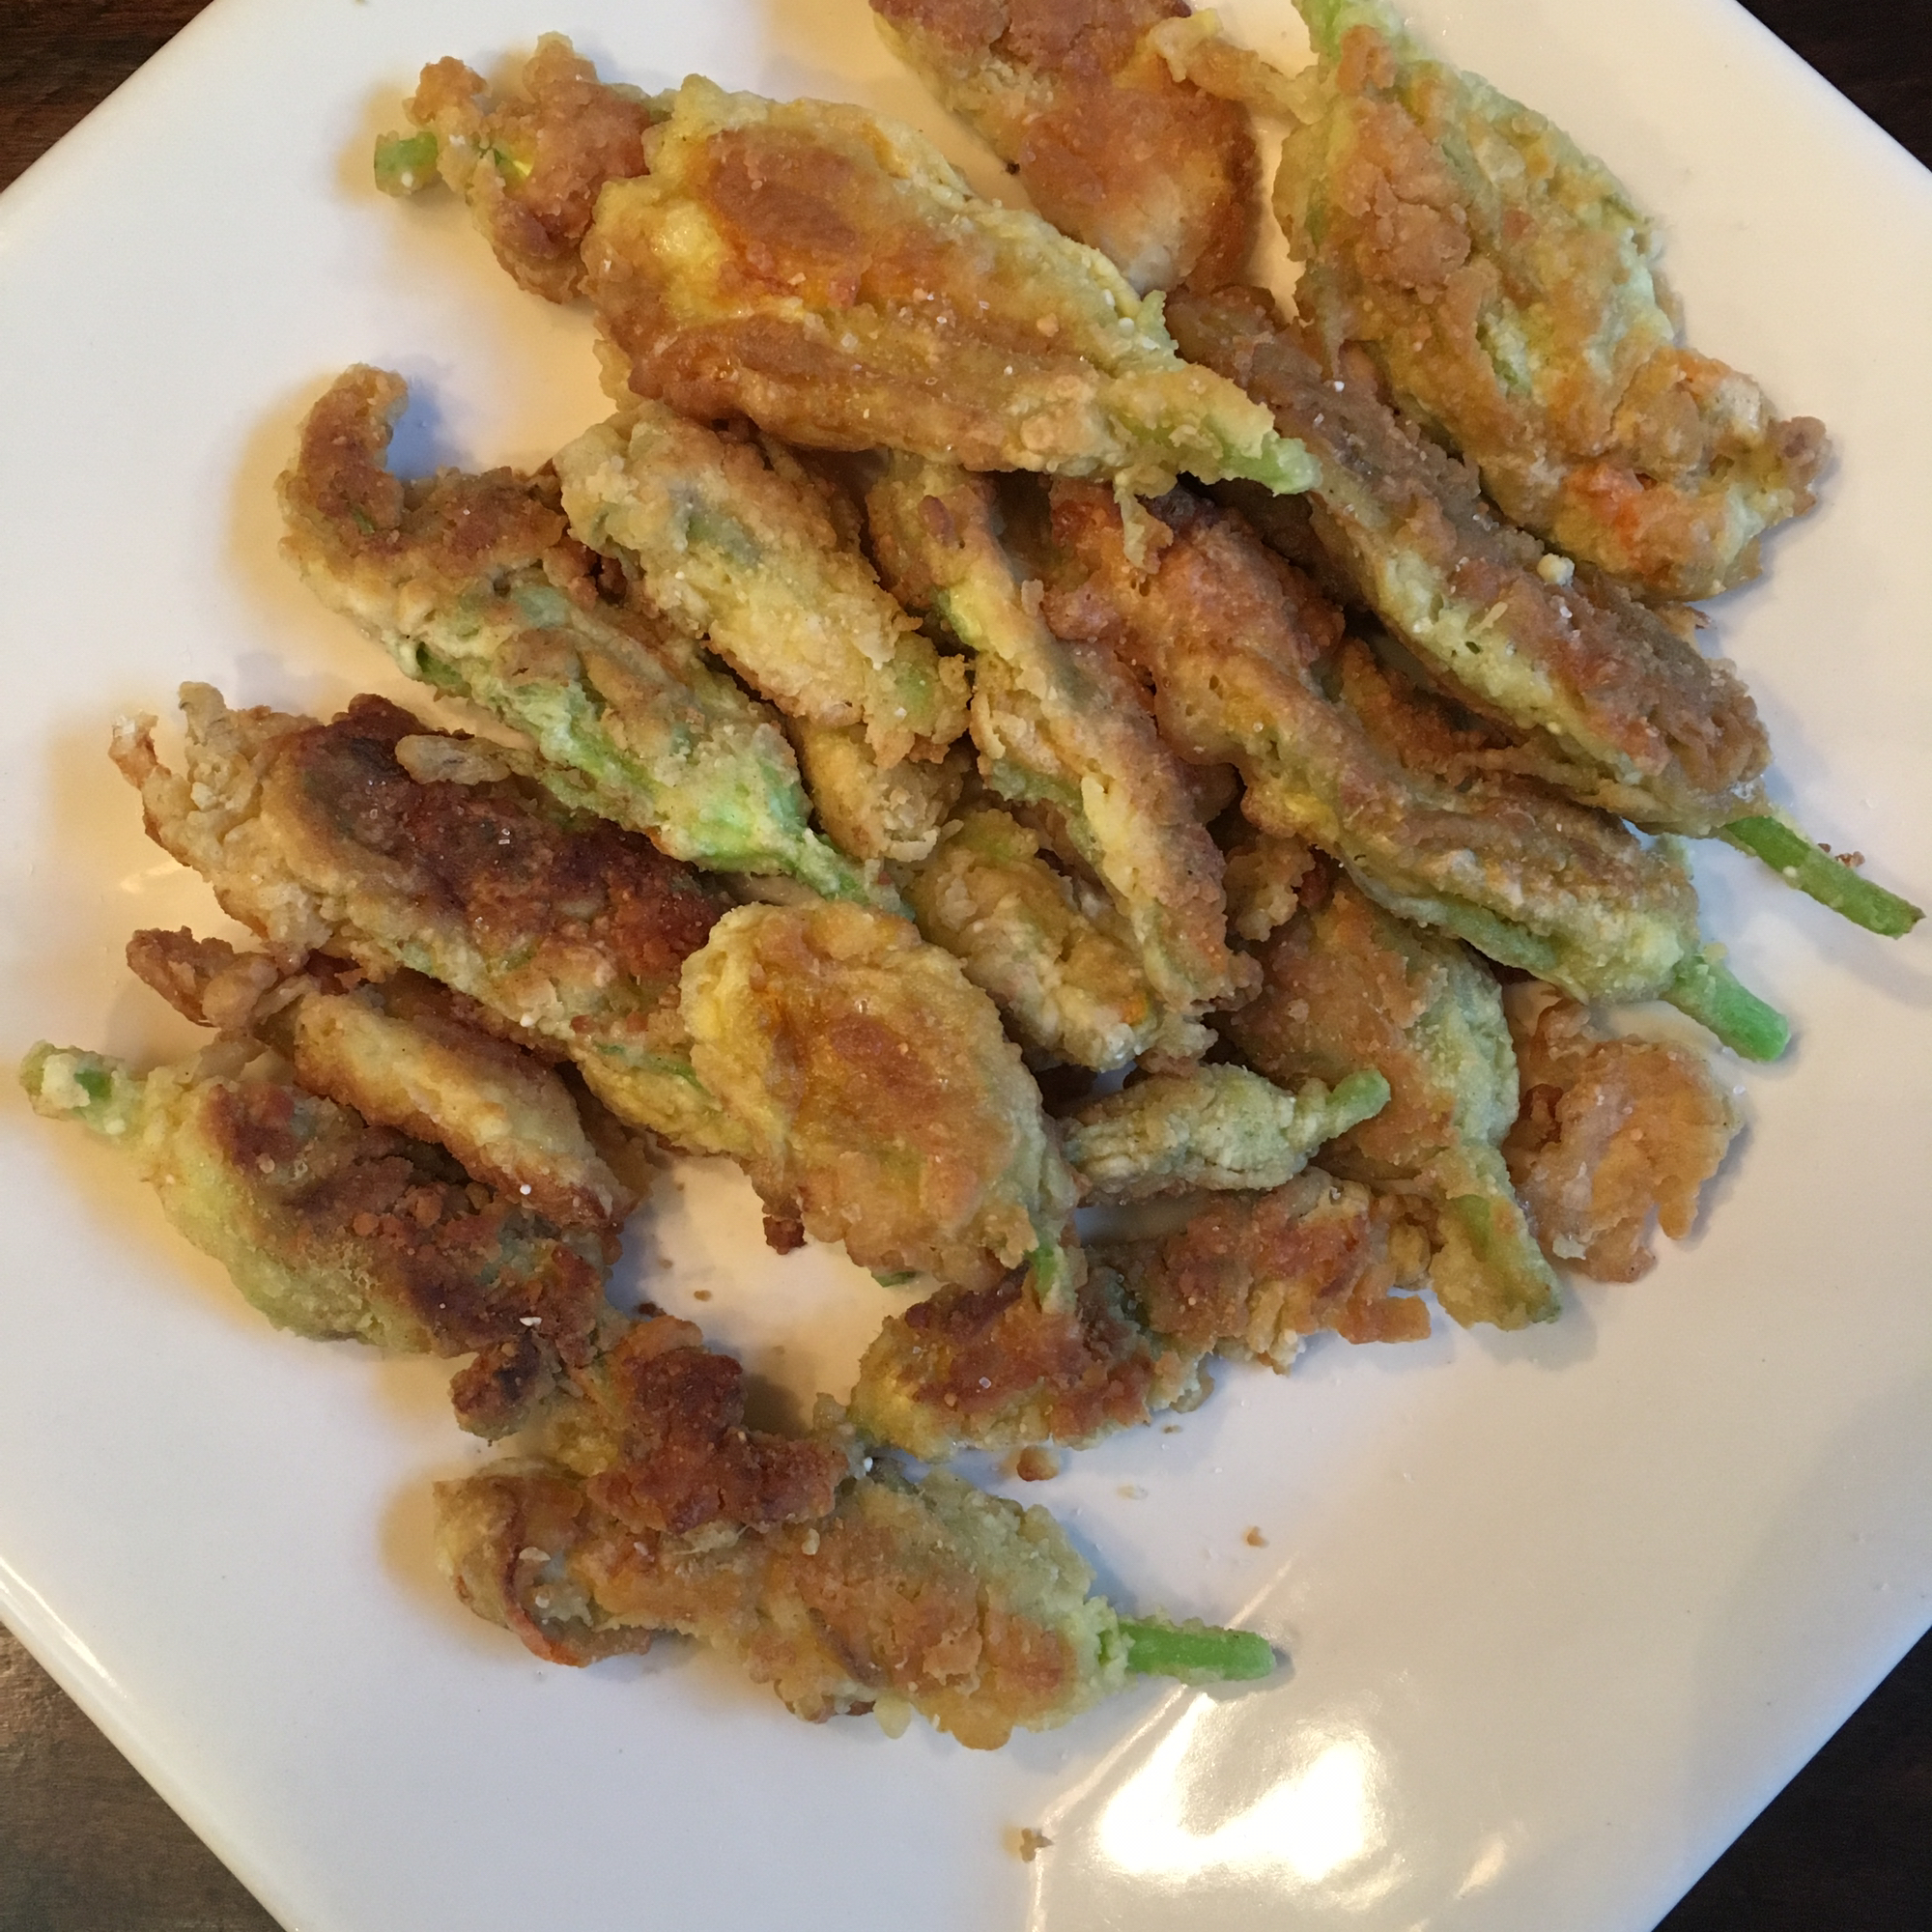 Fried Zucchini Flowers sofiepie